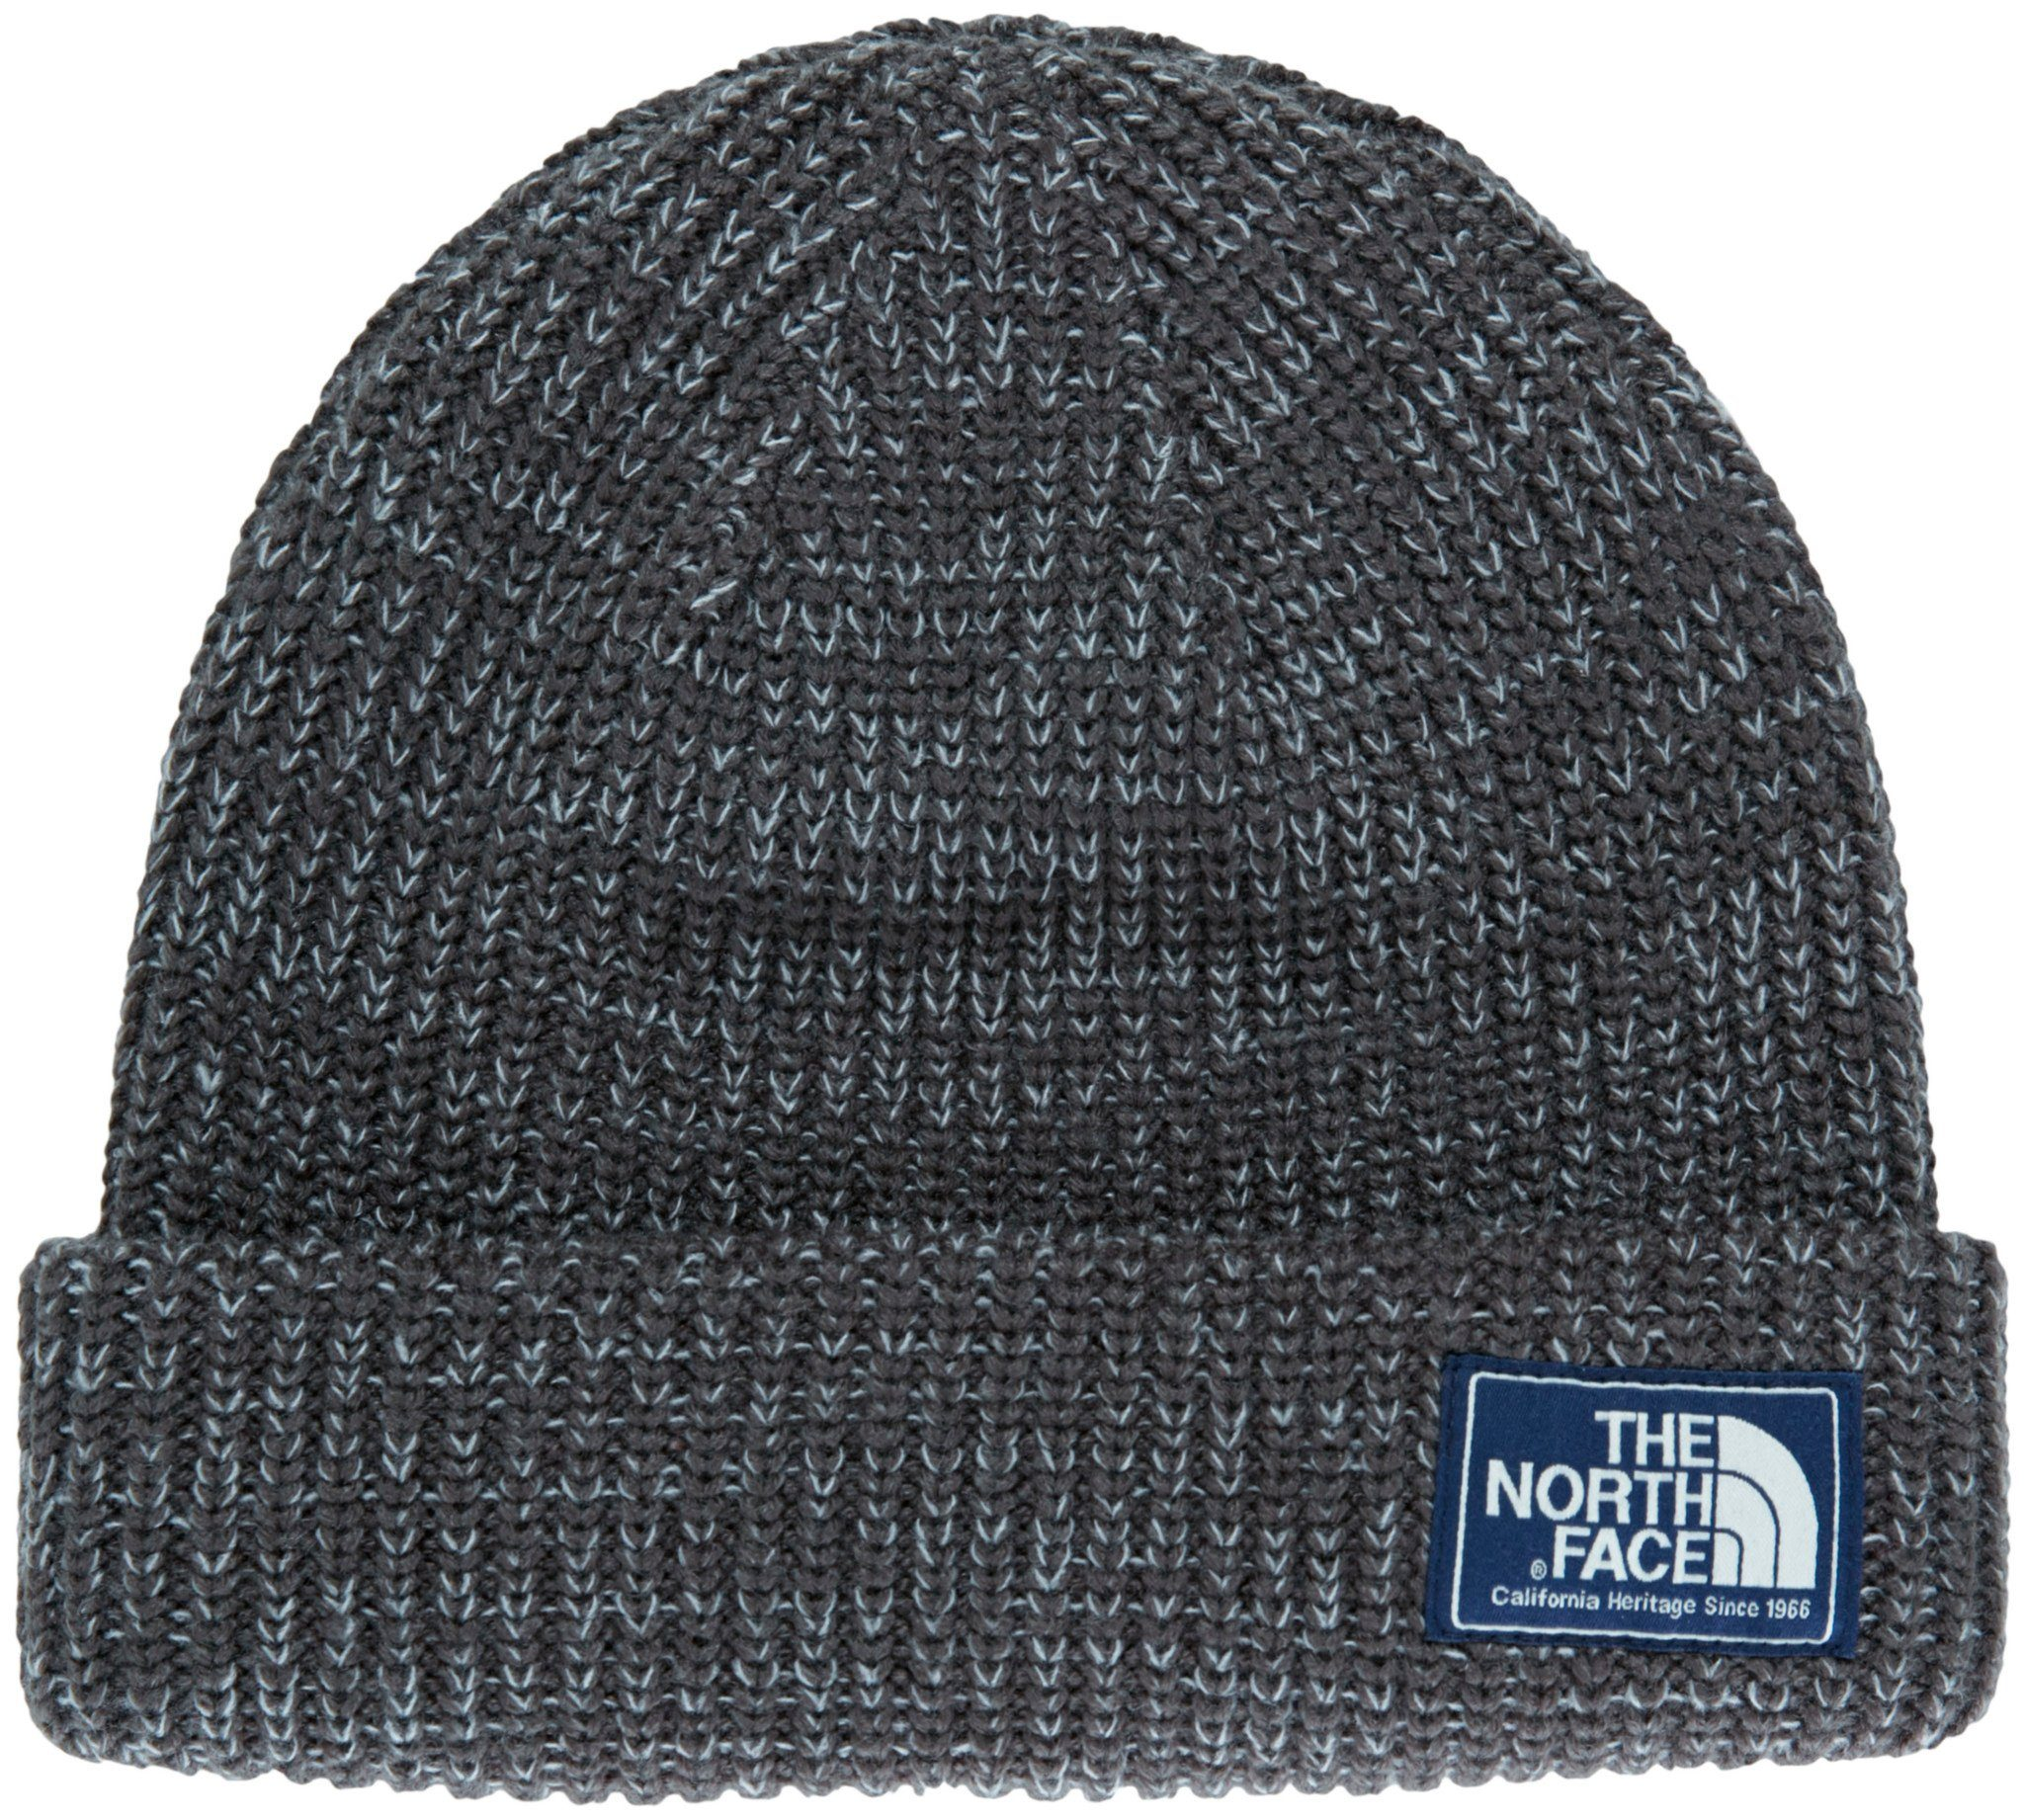 The North Face Hut »Salty Dog Beanie«